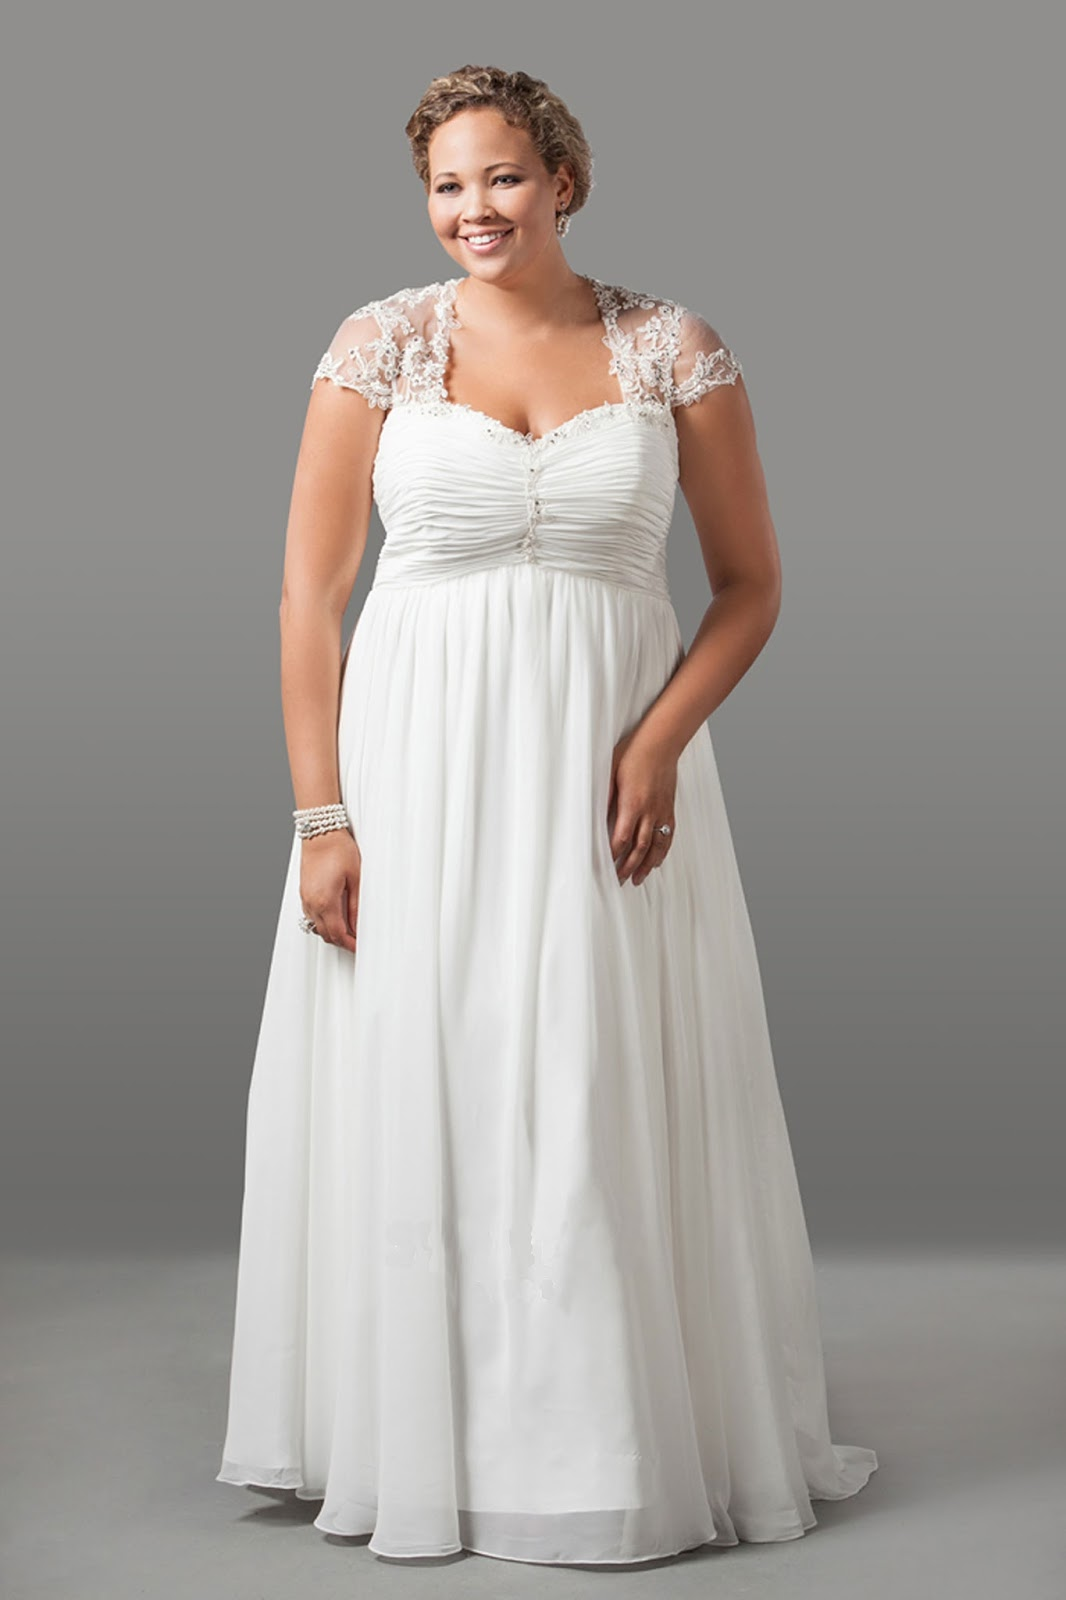 eBay Prom Dresses Plus Size, Plus Size Dresses on eBay, Used Wedding Gowns Plus Size, eBay Plus Size Formal Dresses, eBay Plus Size Gowns, eBay Plus Size Wedding Gowns, eBay White Plus Dress, Plus Size Wedding Dress